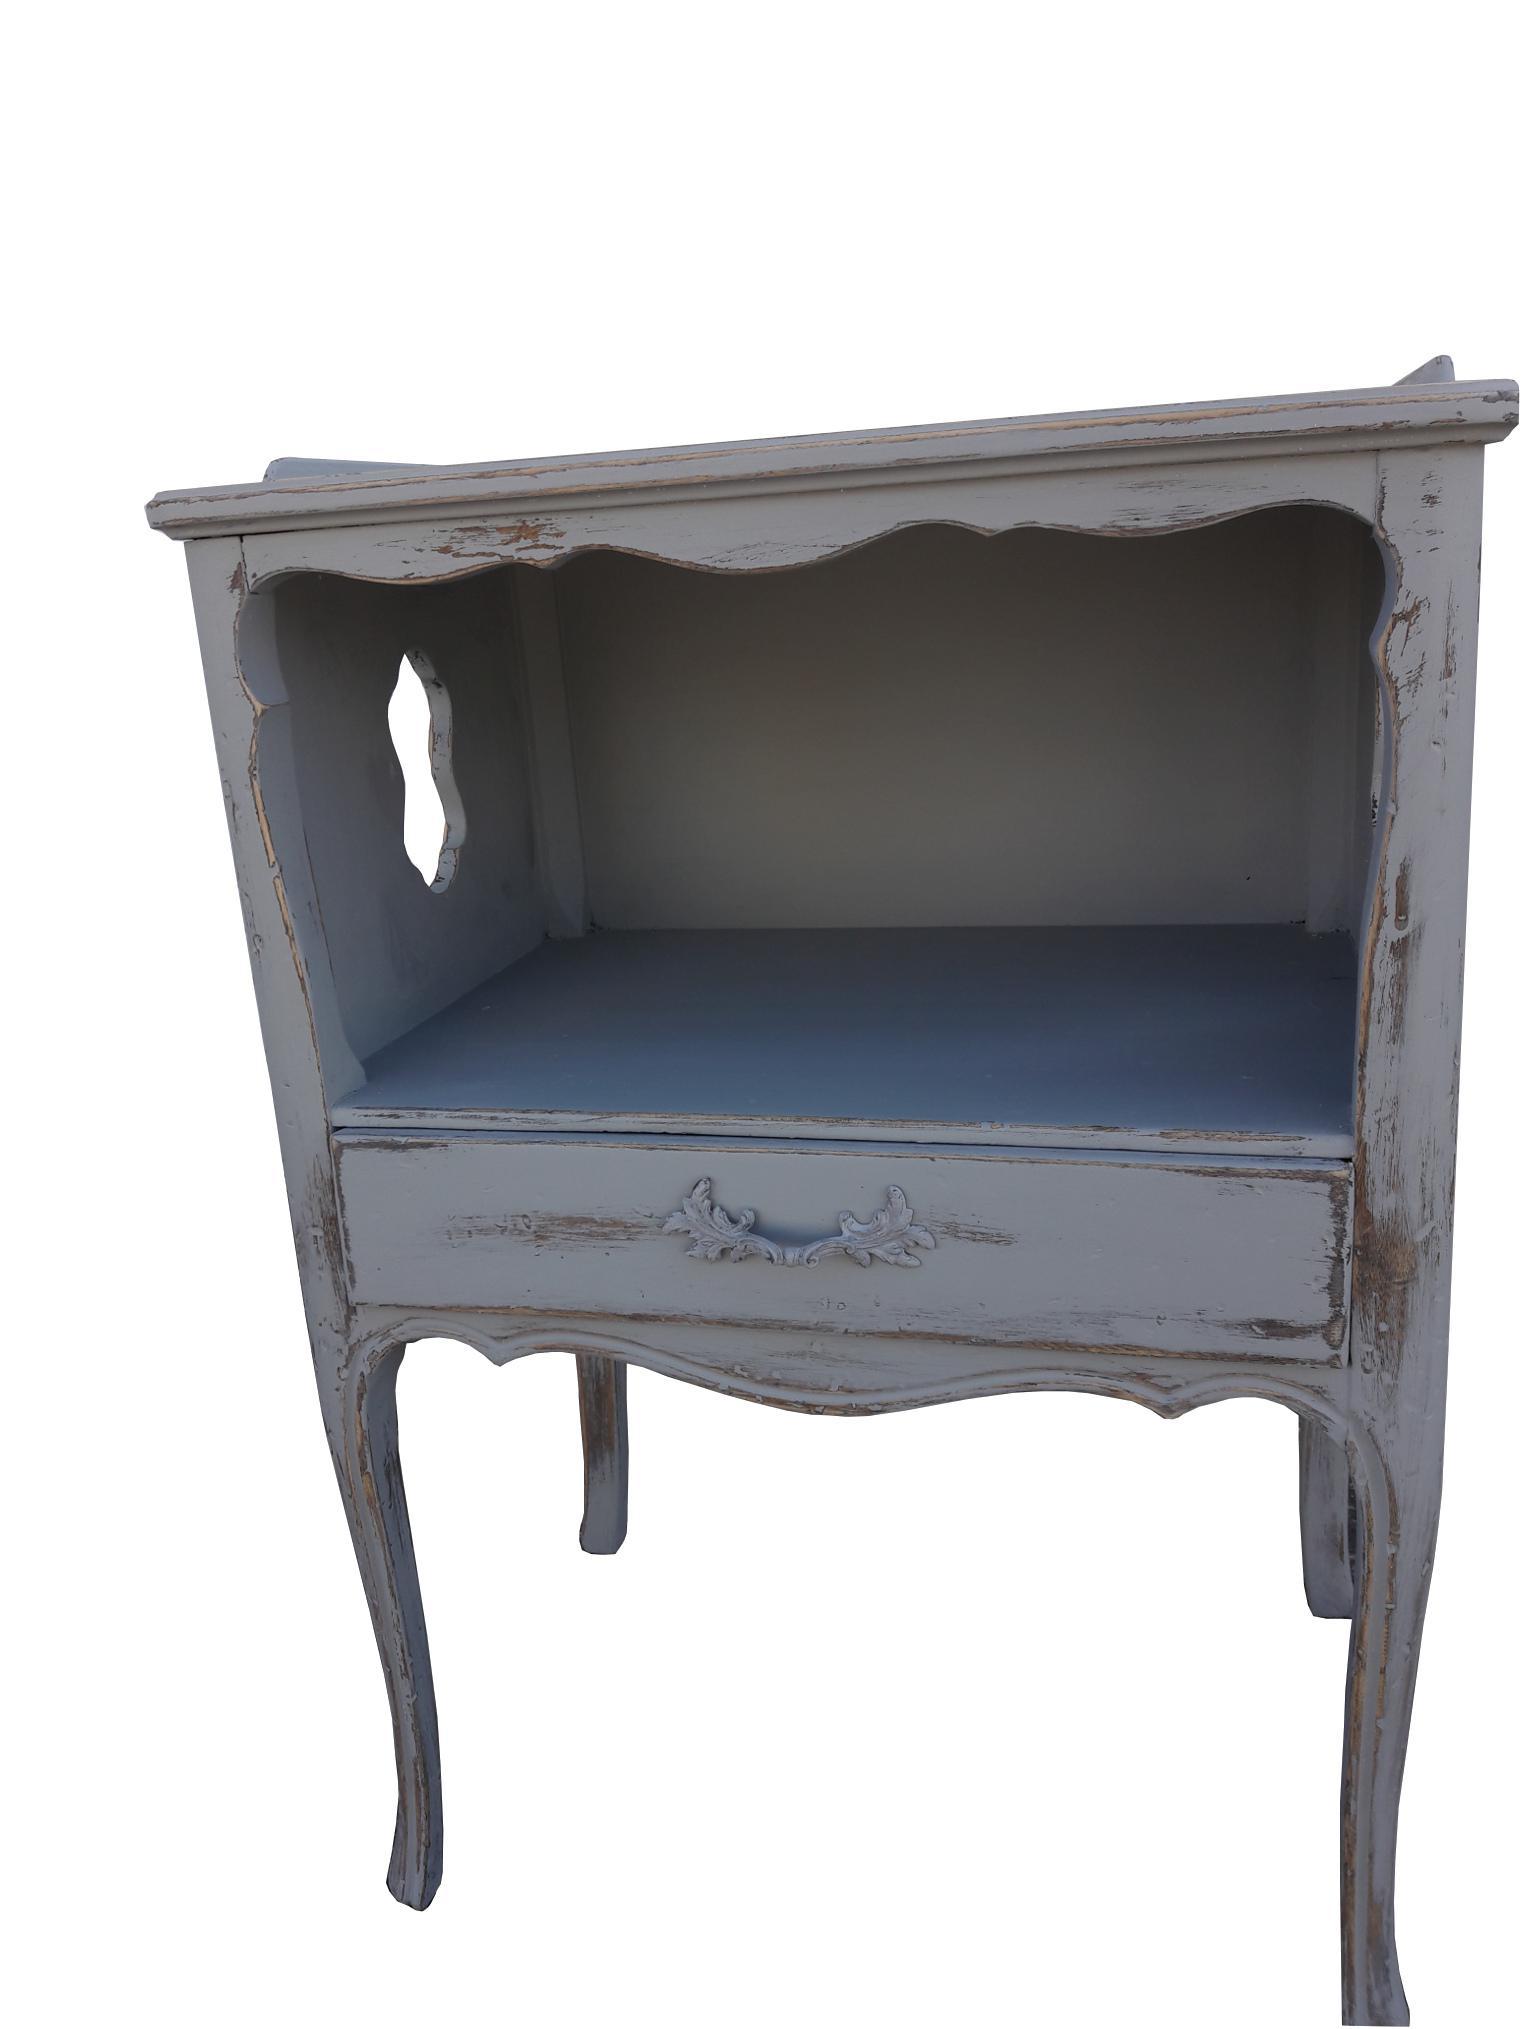 Pair Vintage French Farmhouse Painted Nightstands French Shabby Paris  Apartment Cottage Night Stands French Gray Distressed Night Tables.